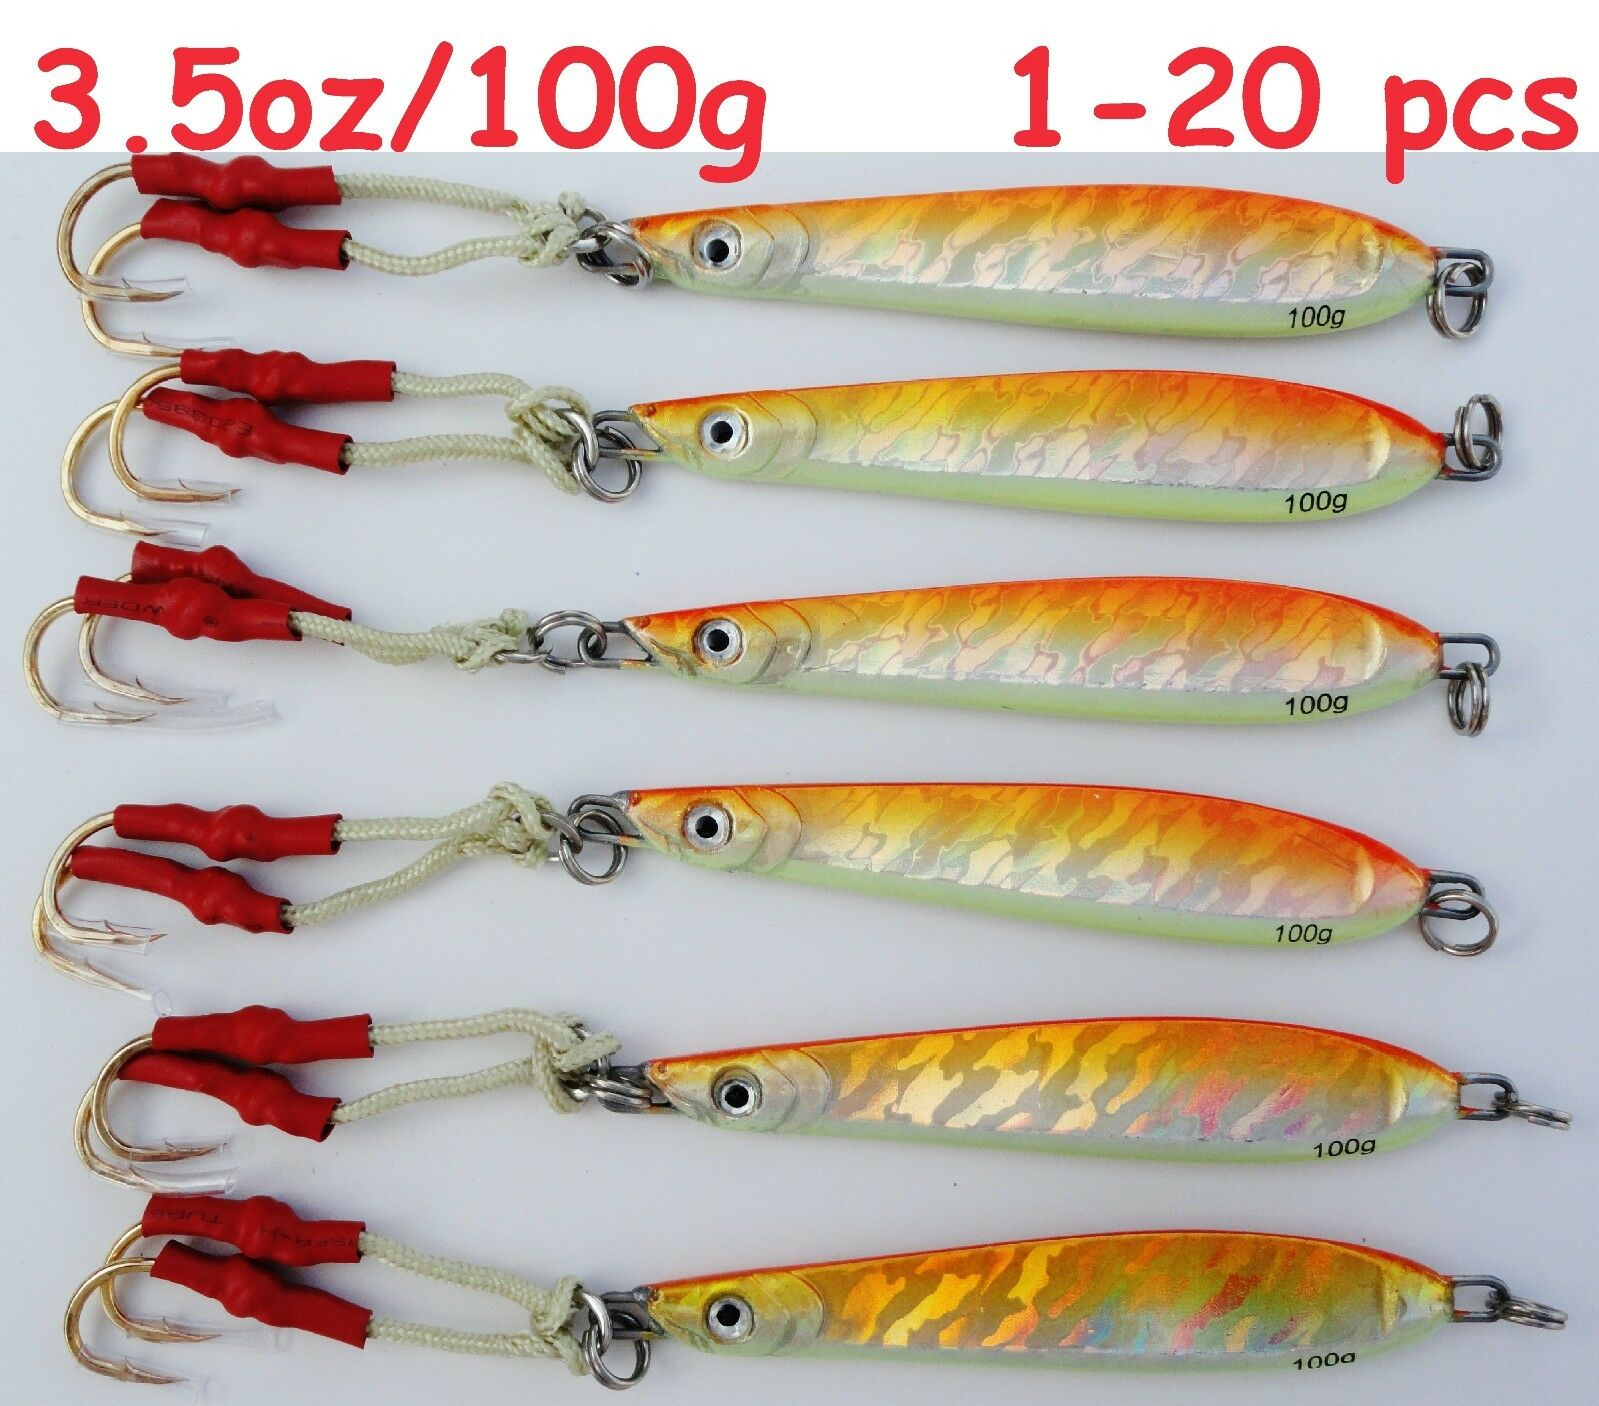 1 20 Pieces Knife jig 3.5oz100g arancia verdeical Butterfly Saltwater Lures B